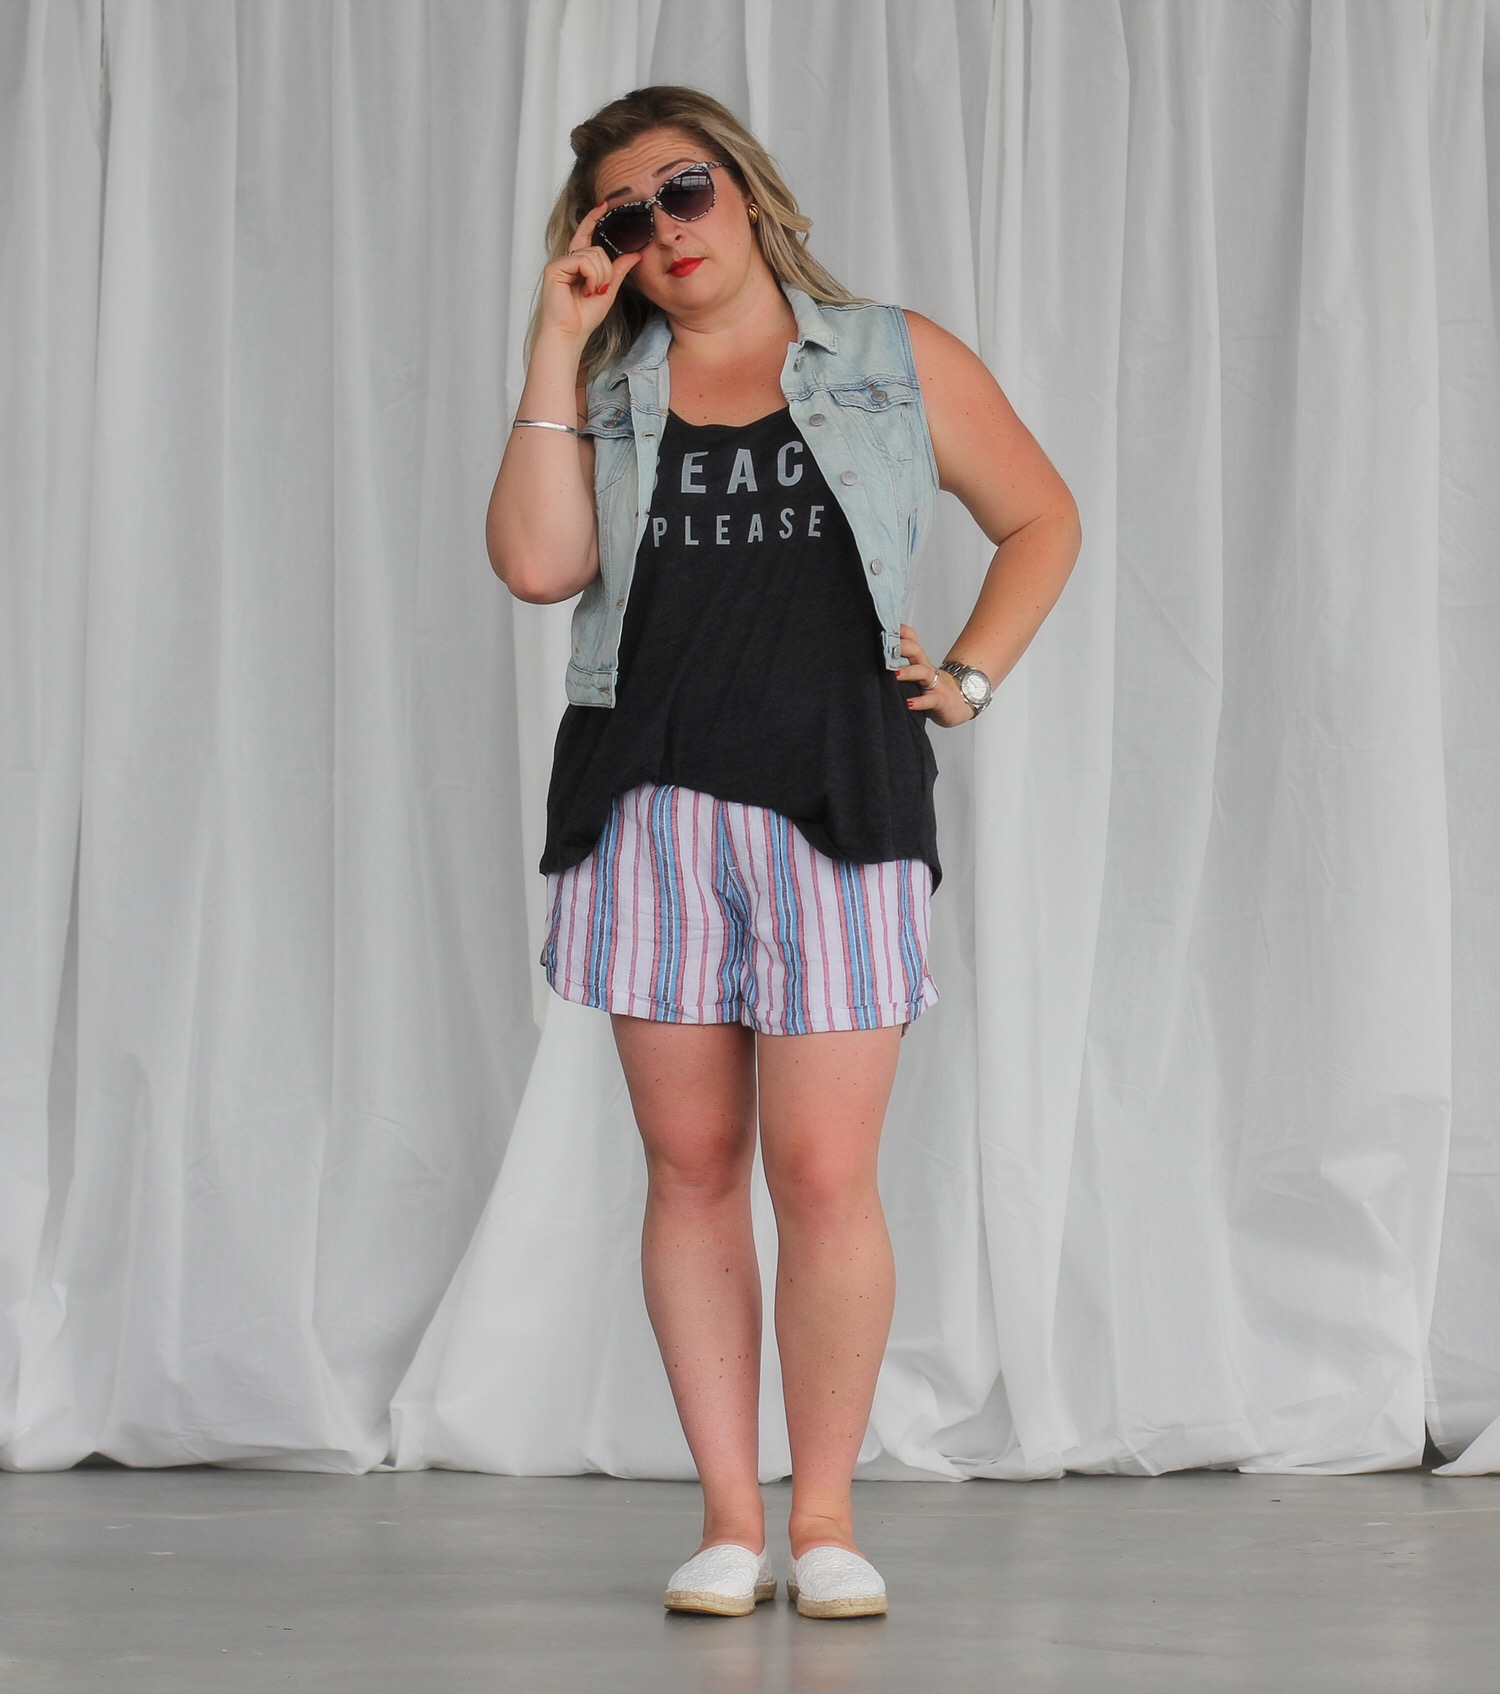 Old Navy Plus Size Fashion Ottawa Fashion blog mode XLusive Chantsy Chantal Sarkisian